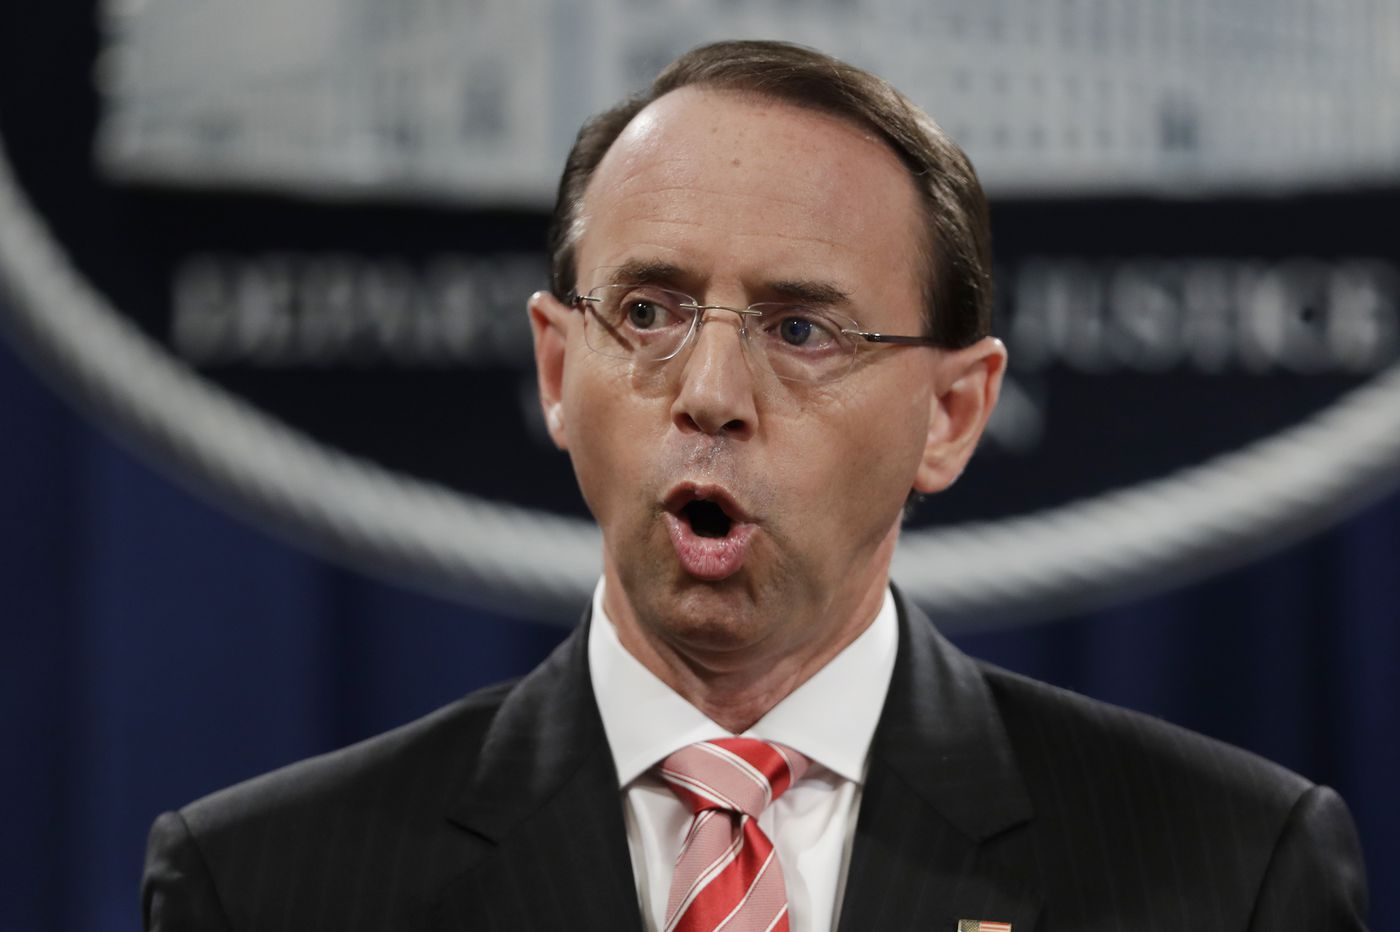 Rod Rosenstein to step down once attorney general is confirmed